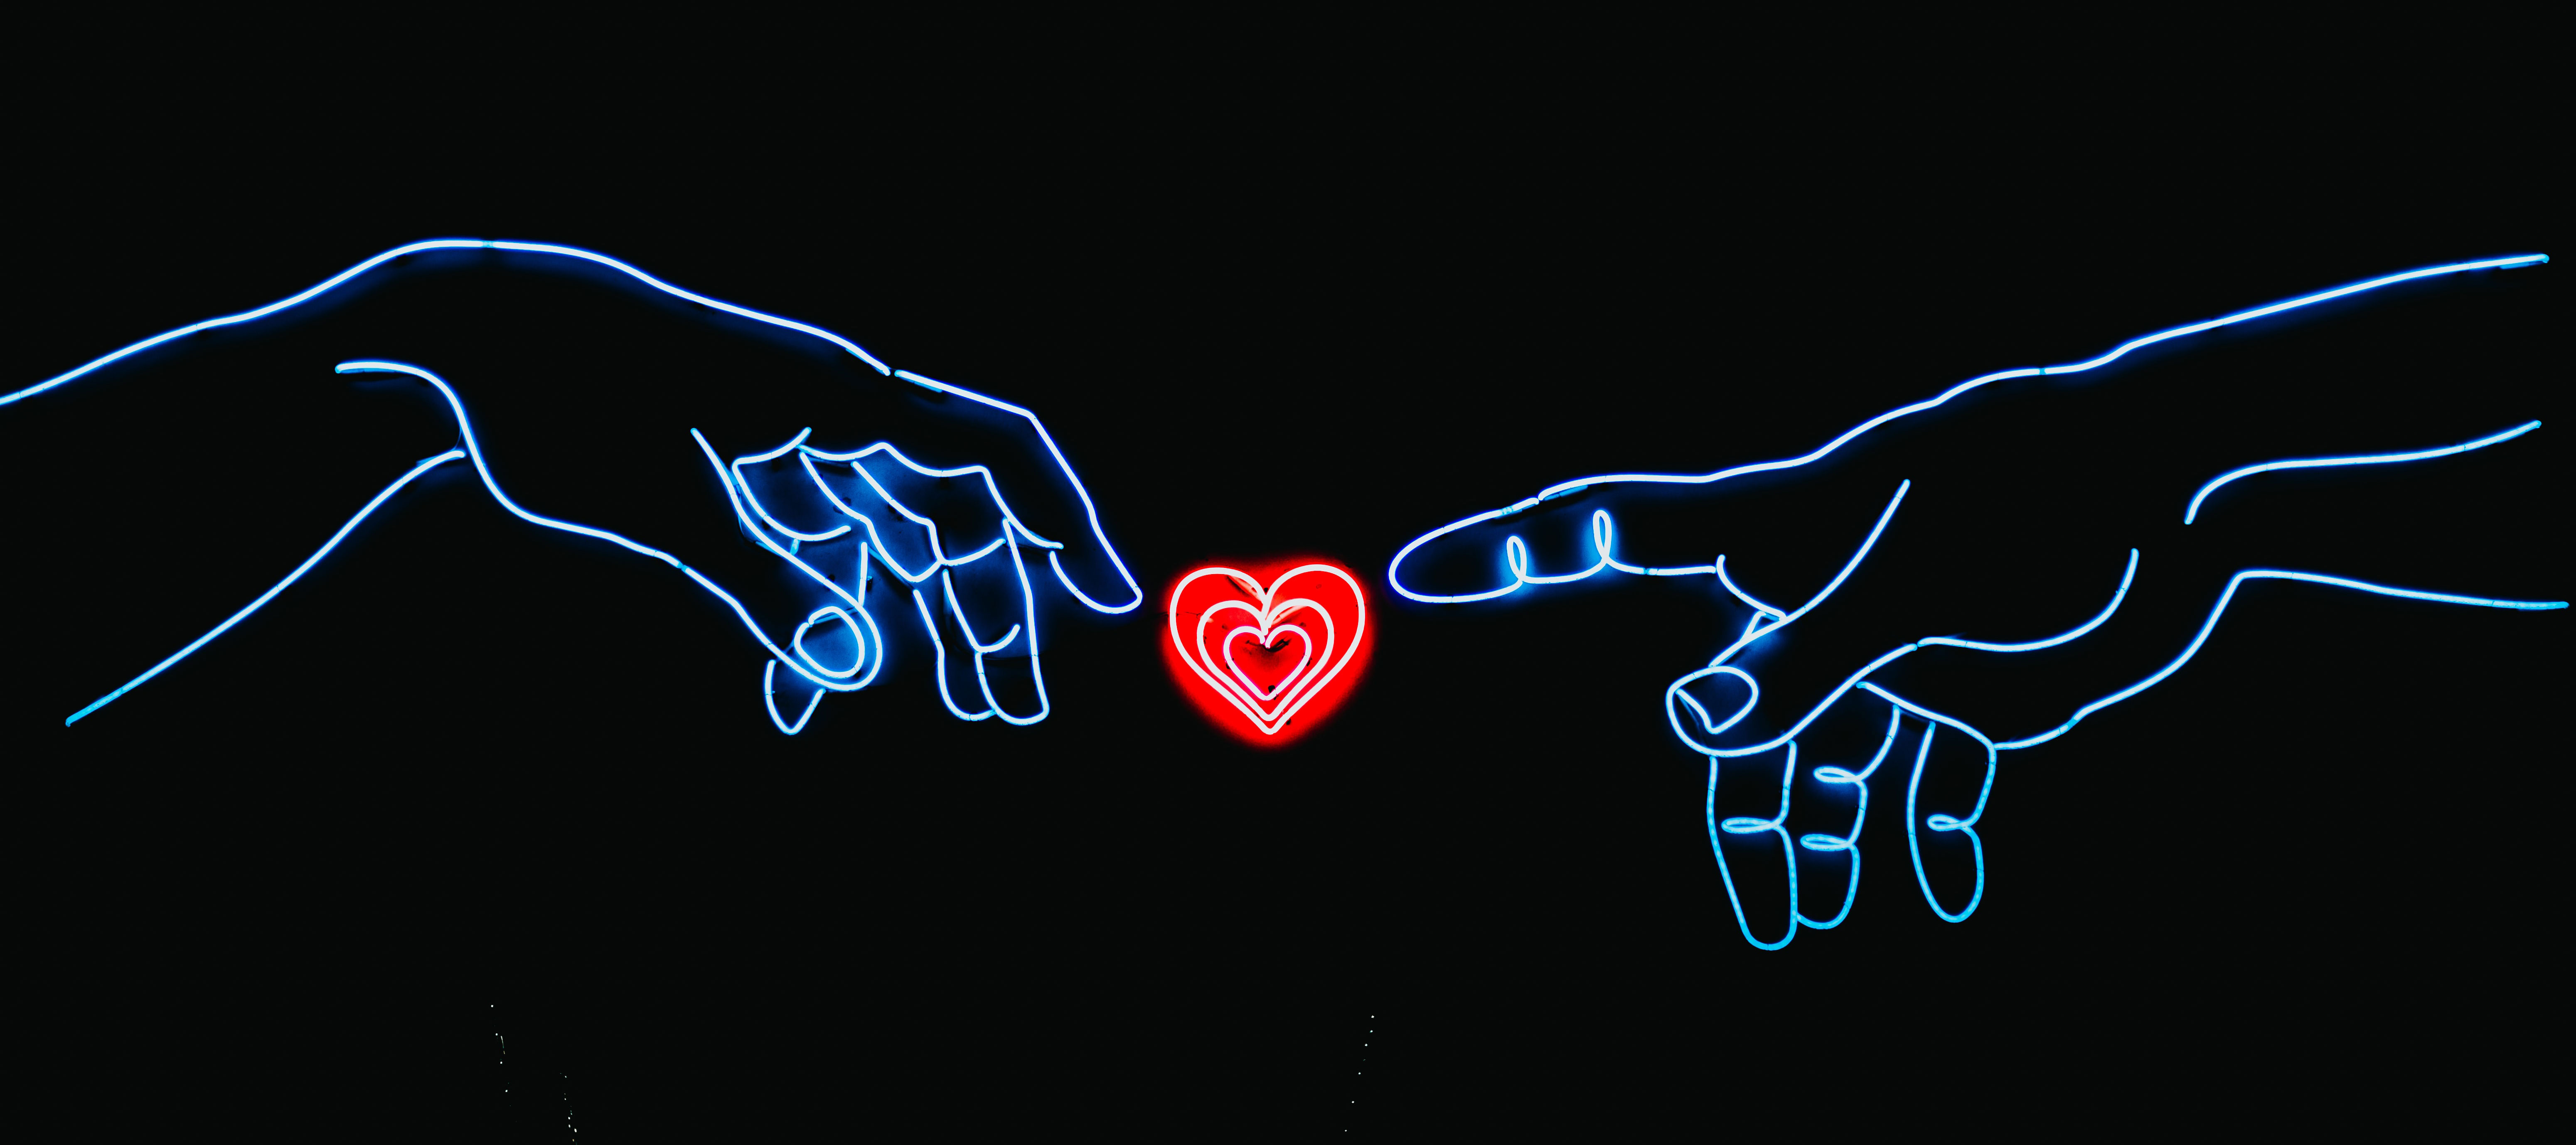 heroic-fundraising-blog-featured-image-hearts-hands-relationship